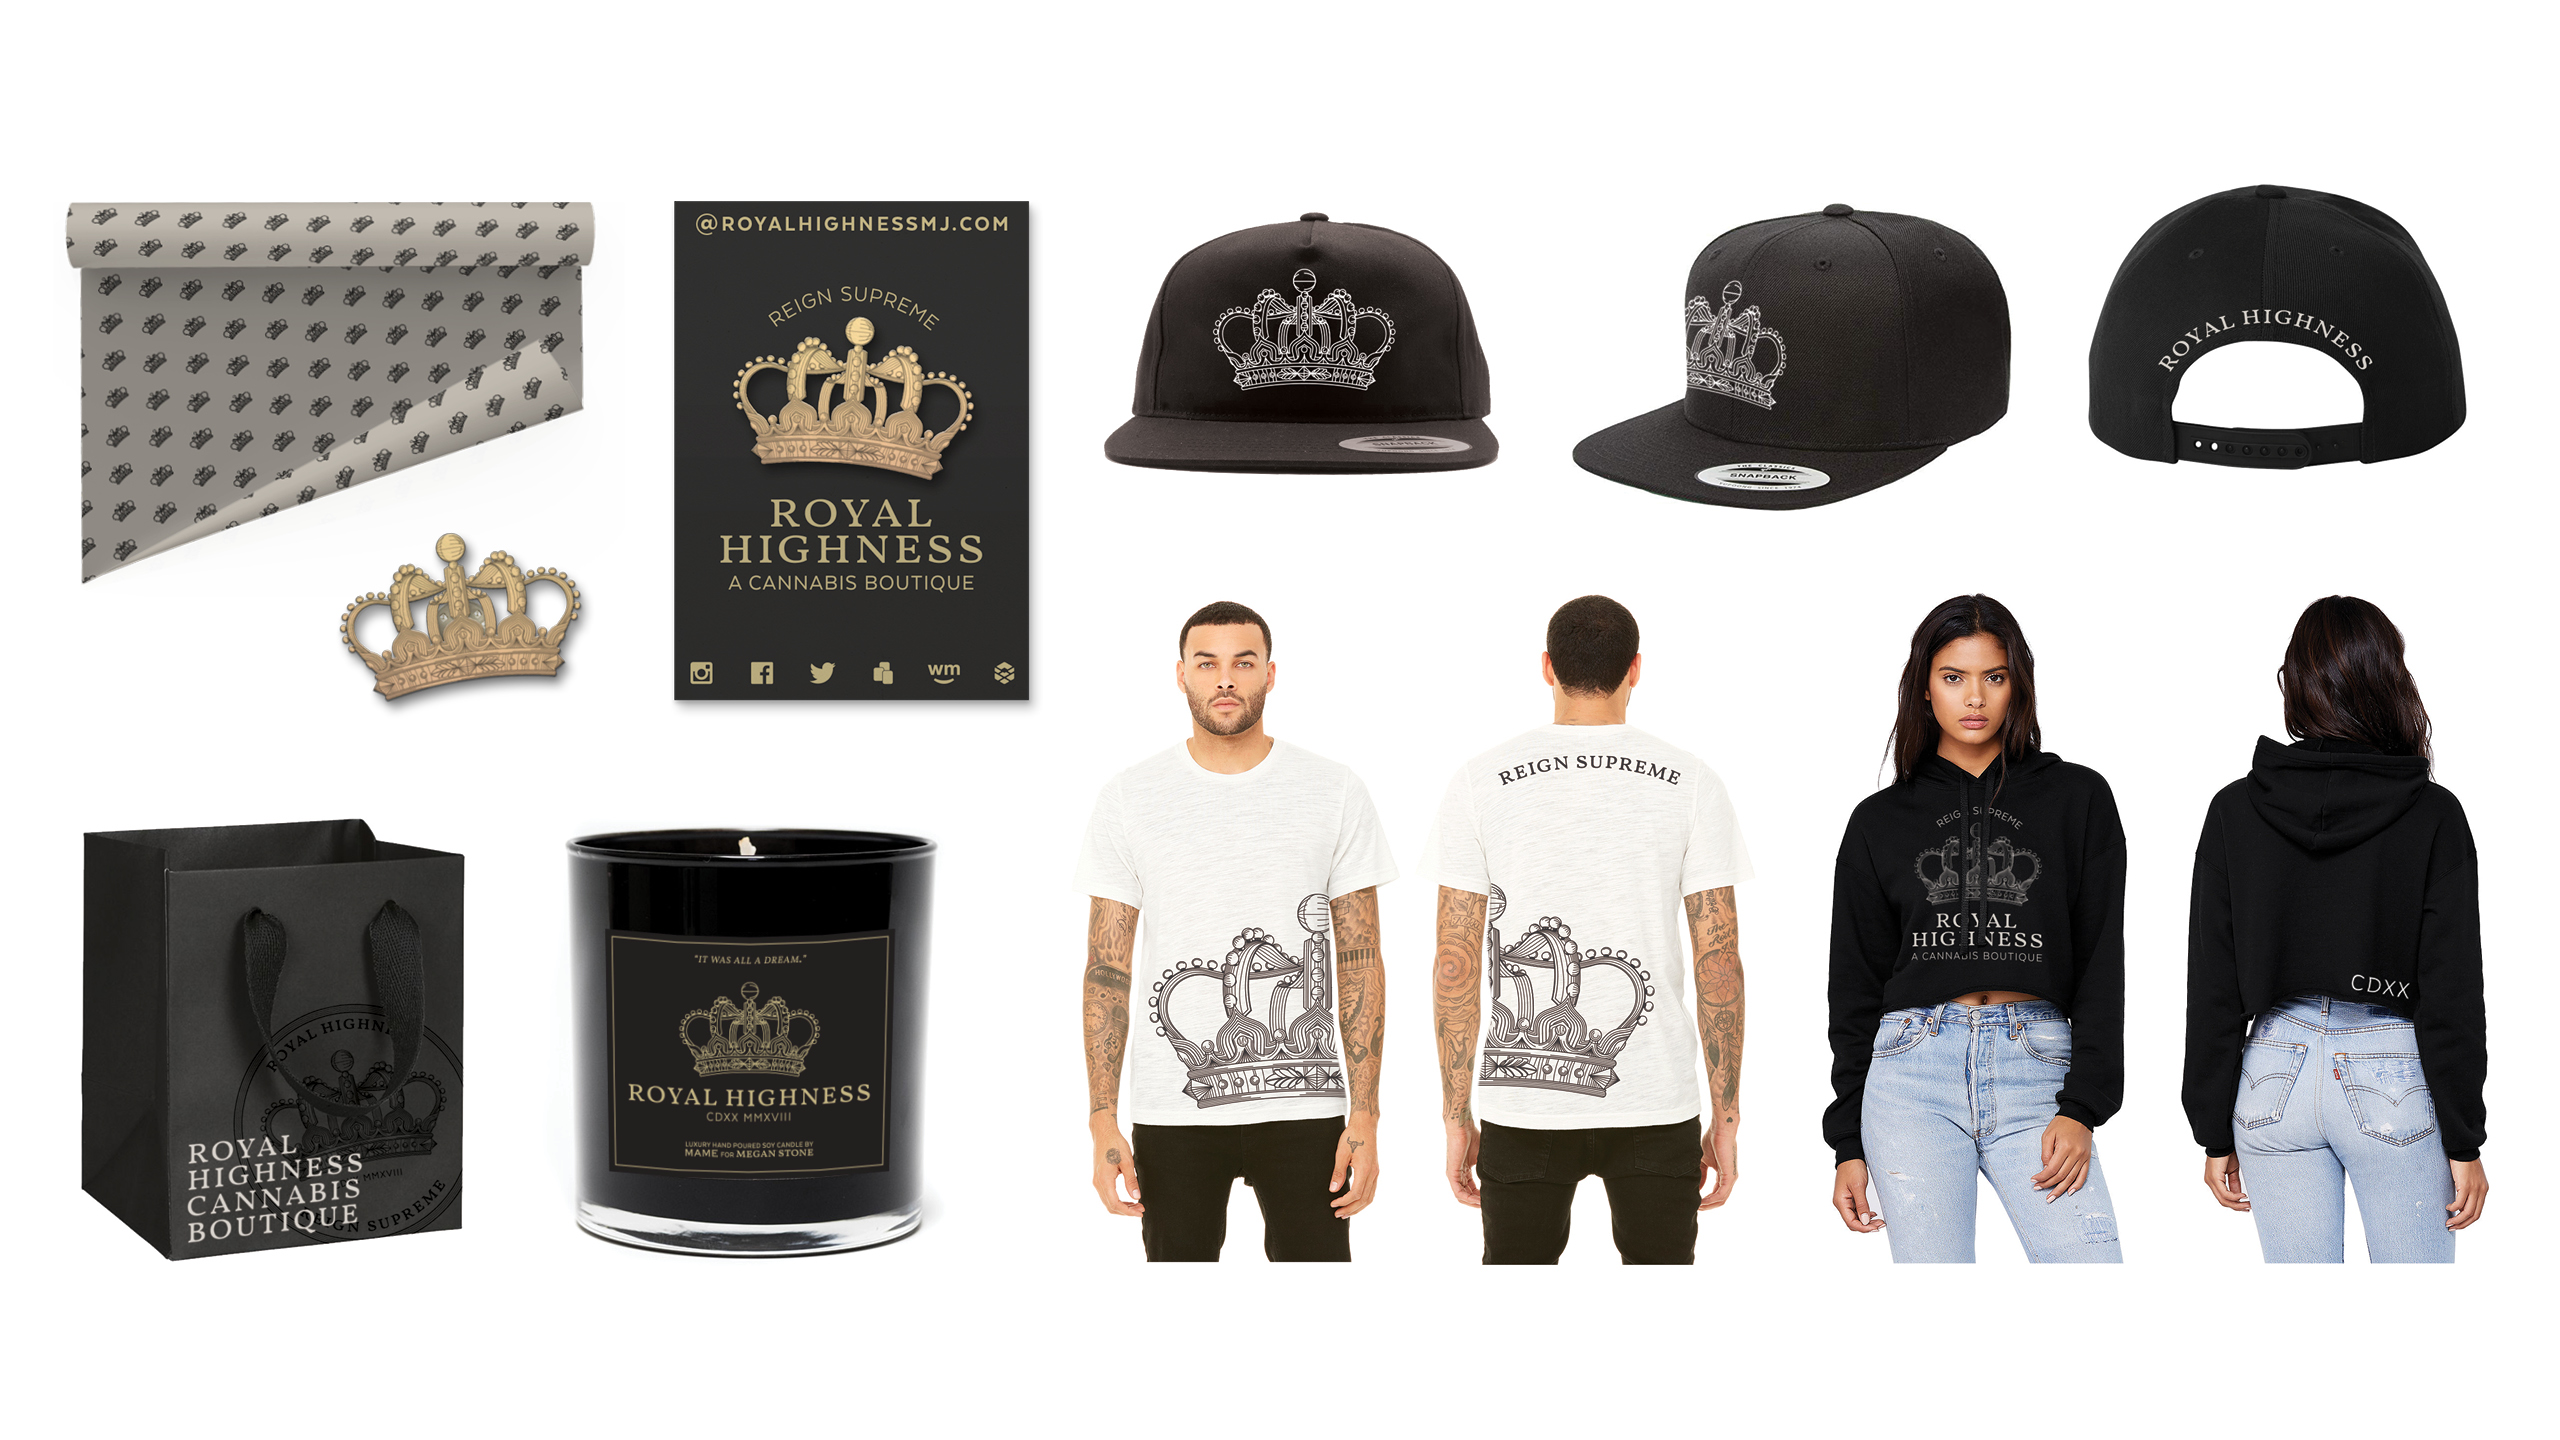 Royal Highness Custom Apparel & Branded Collateral by High Road Design Studio